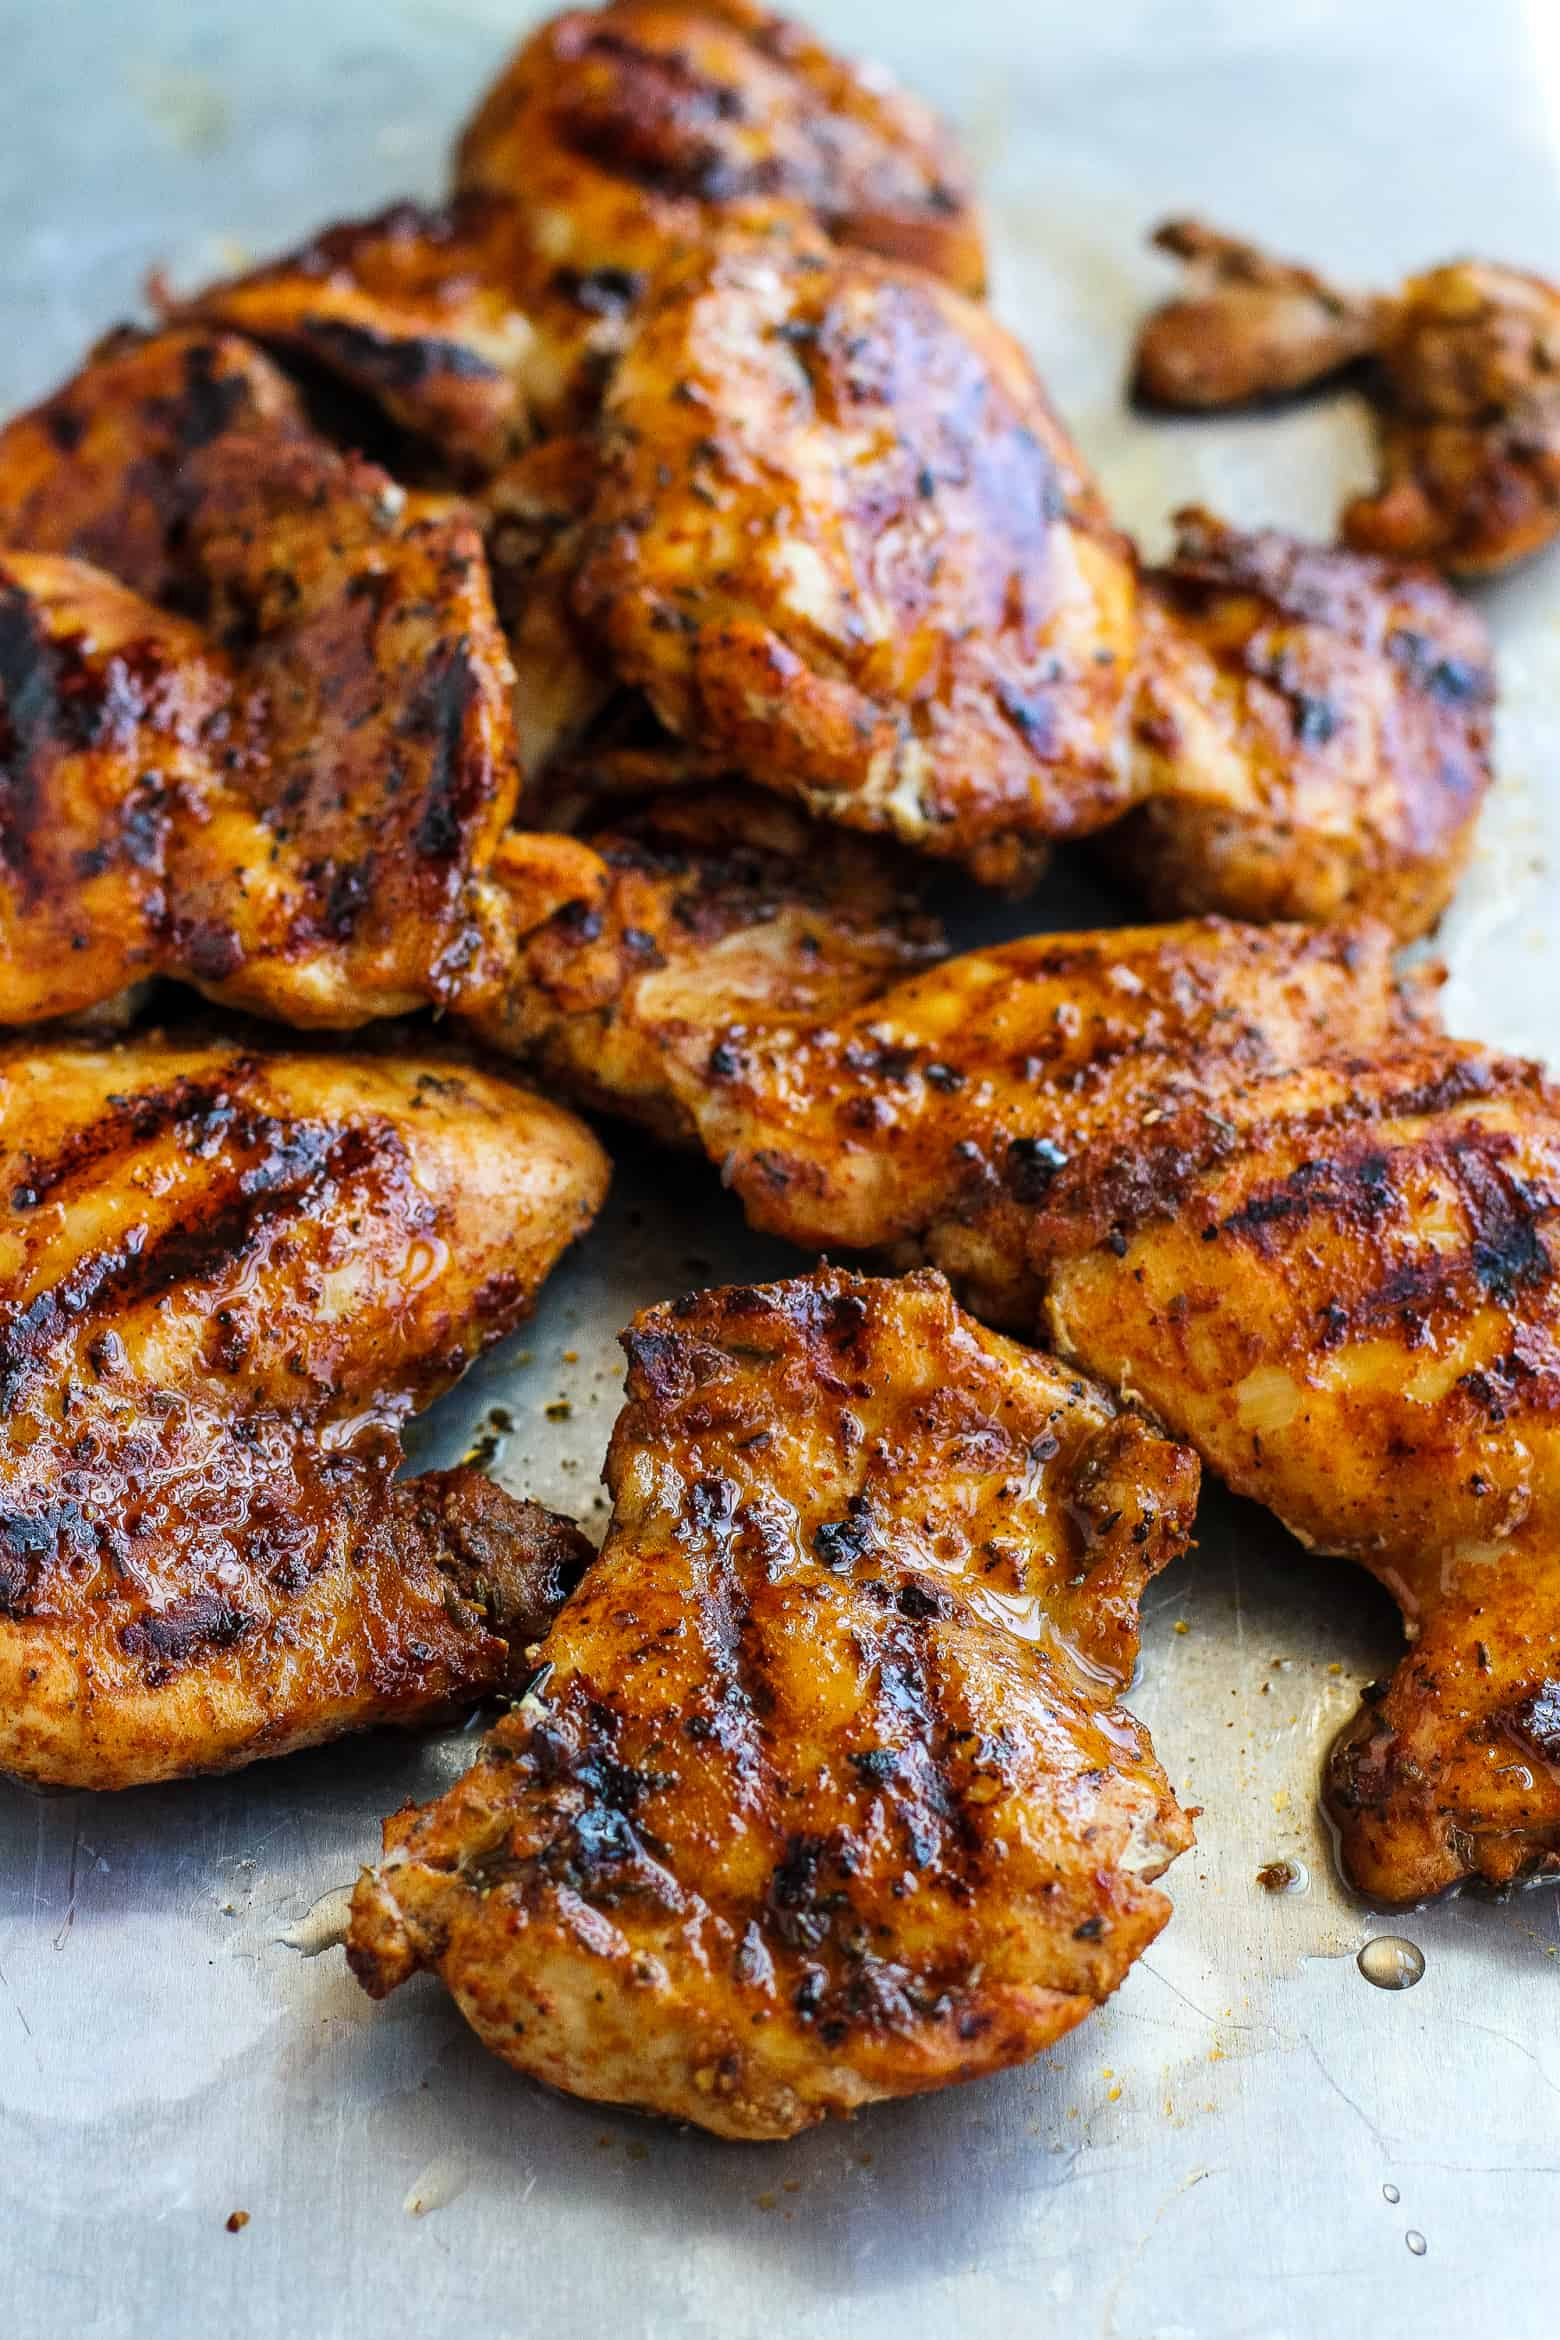 Spice rubbed grilled chicken